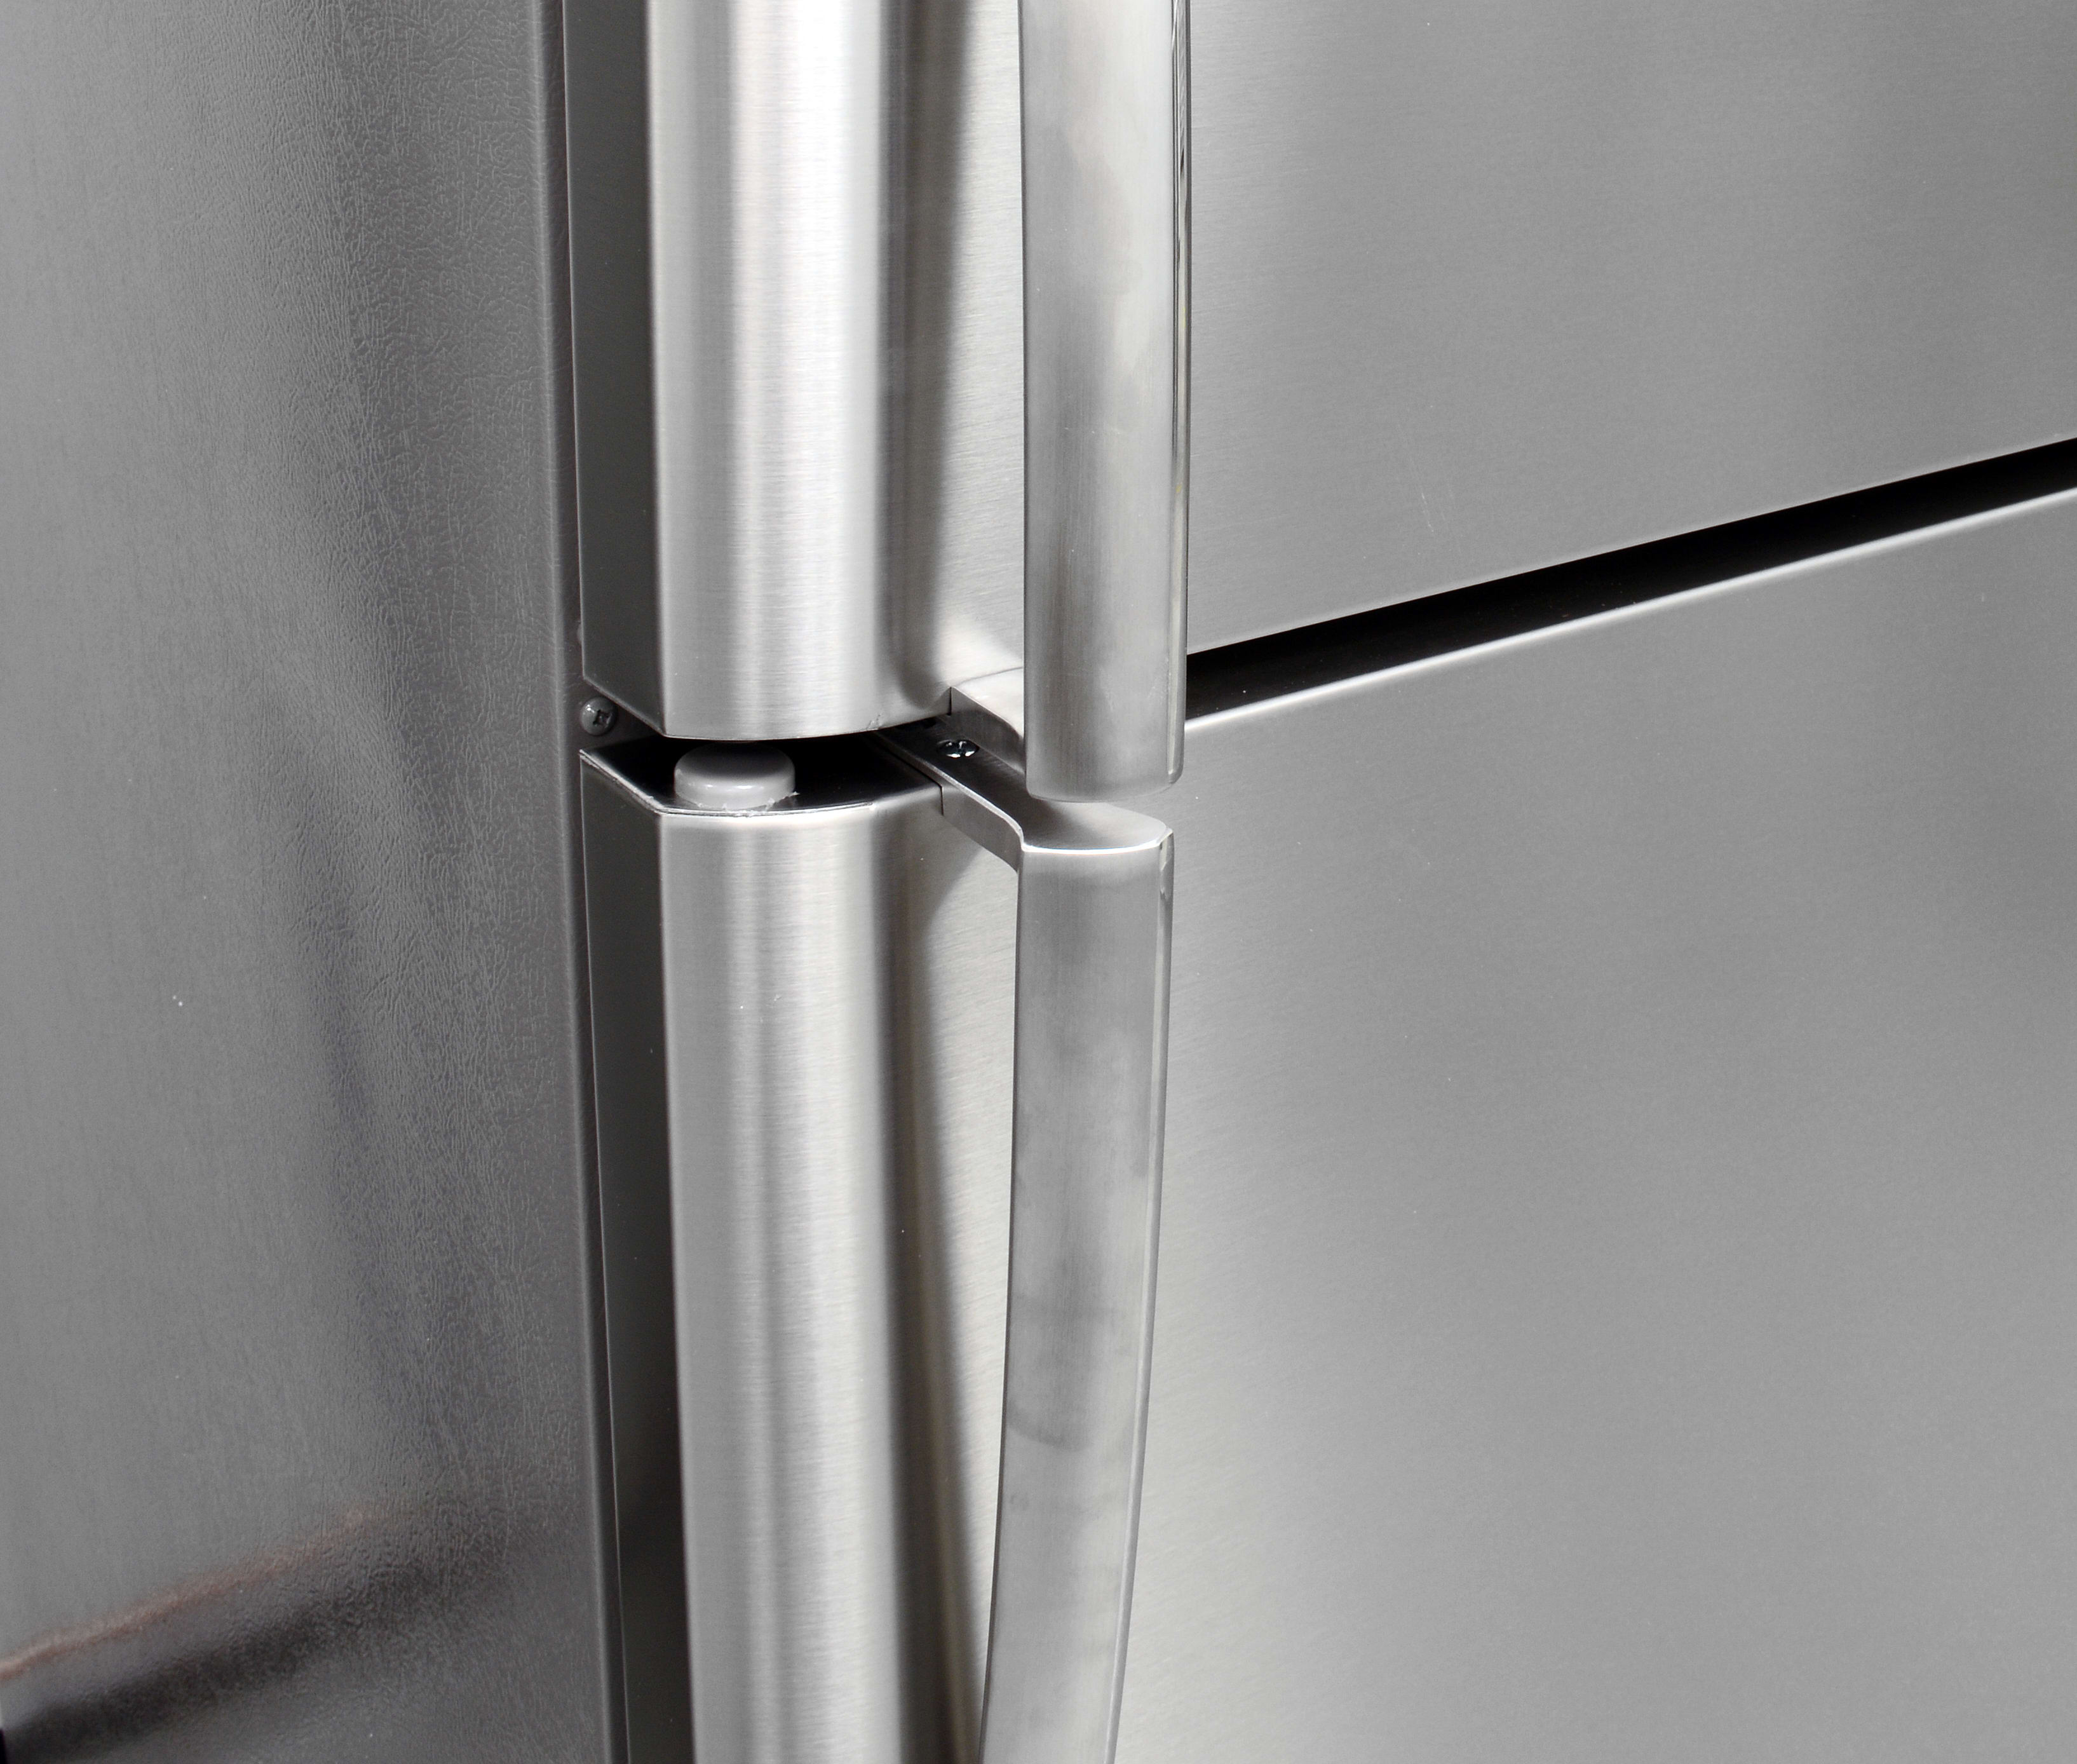 The Frigidaire Gallery FGHI2164QF's door handles feel sturdy and are easy to grip.